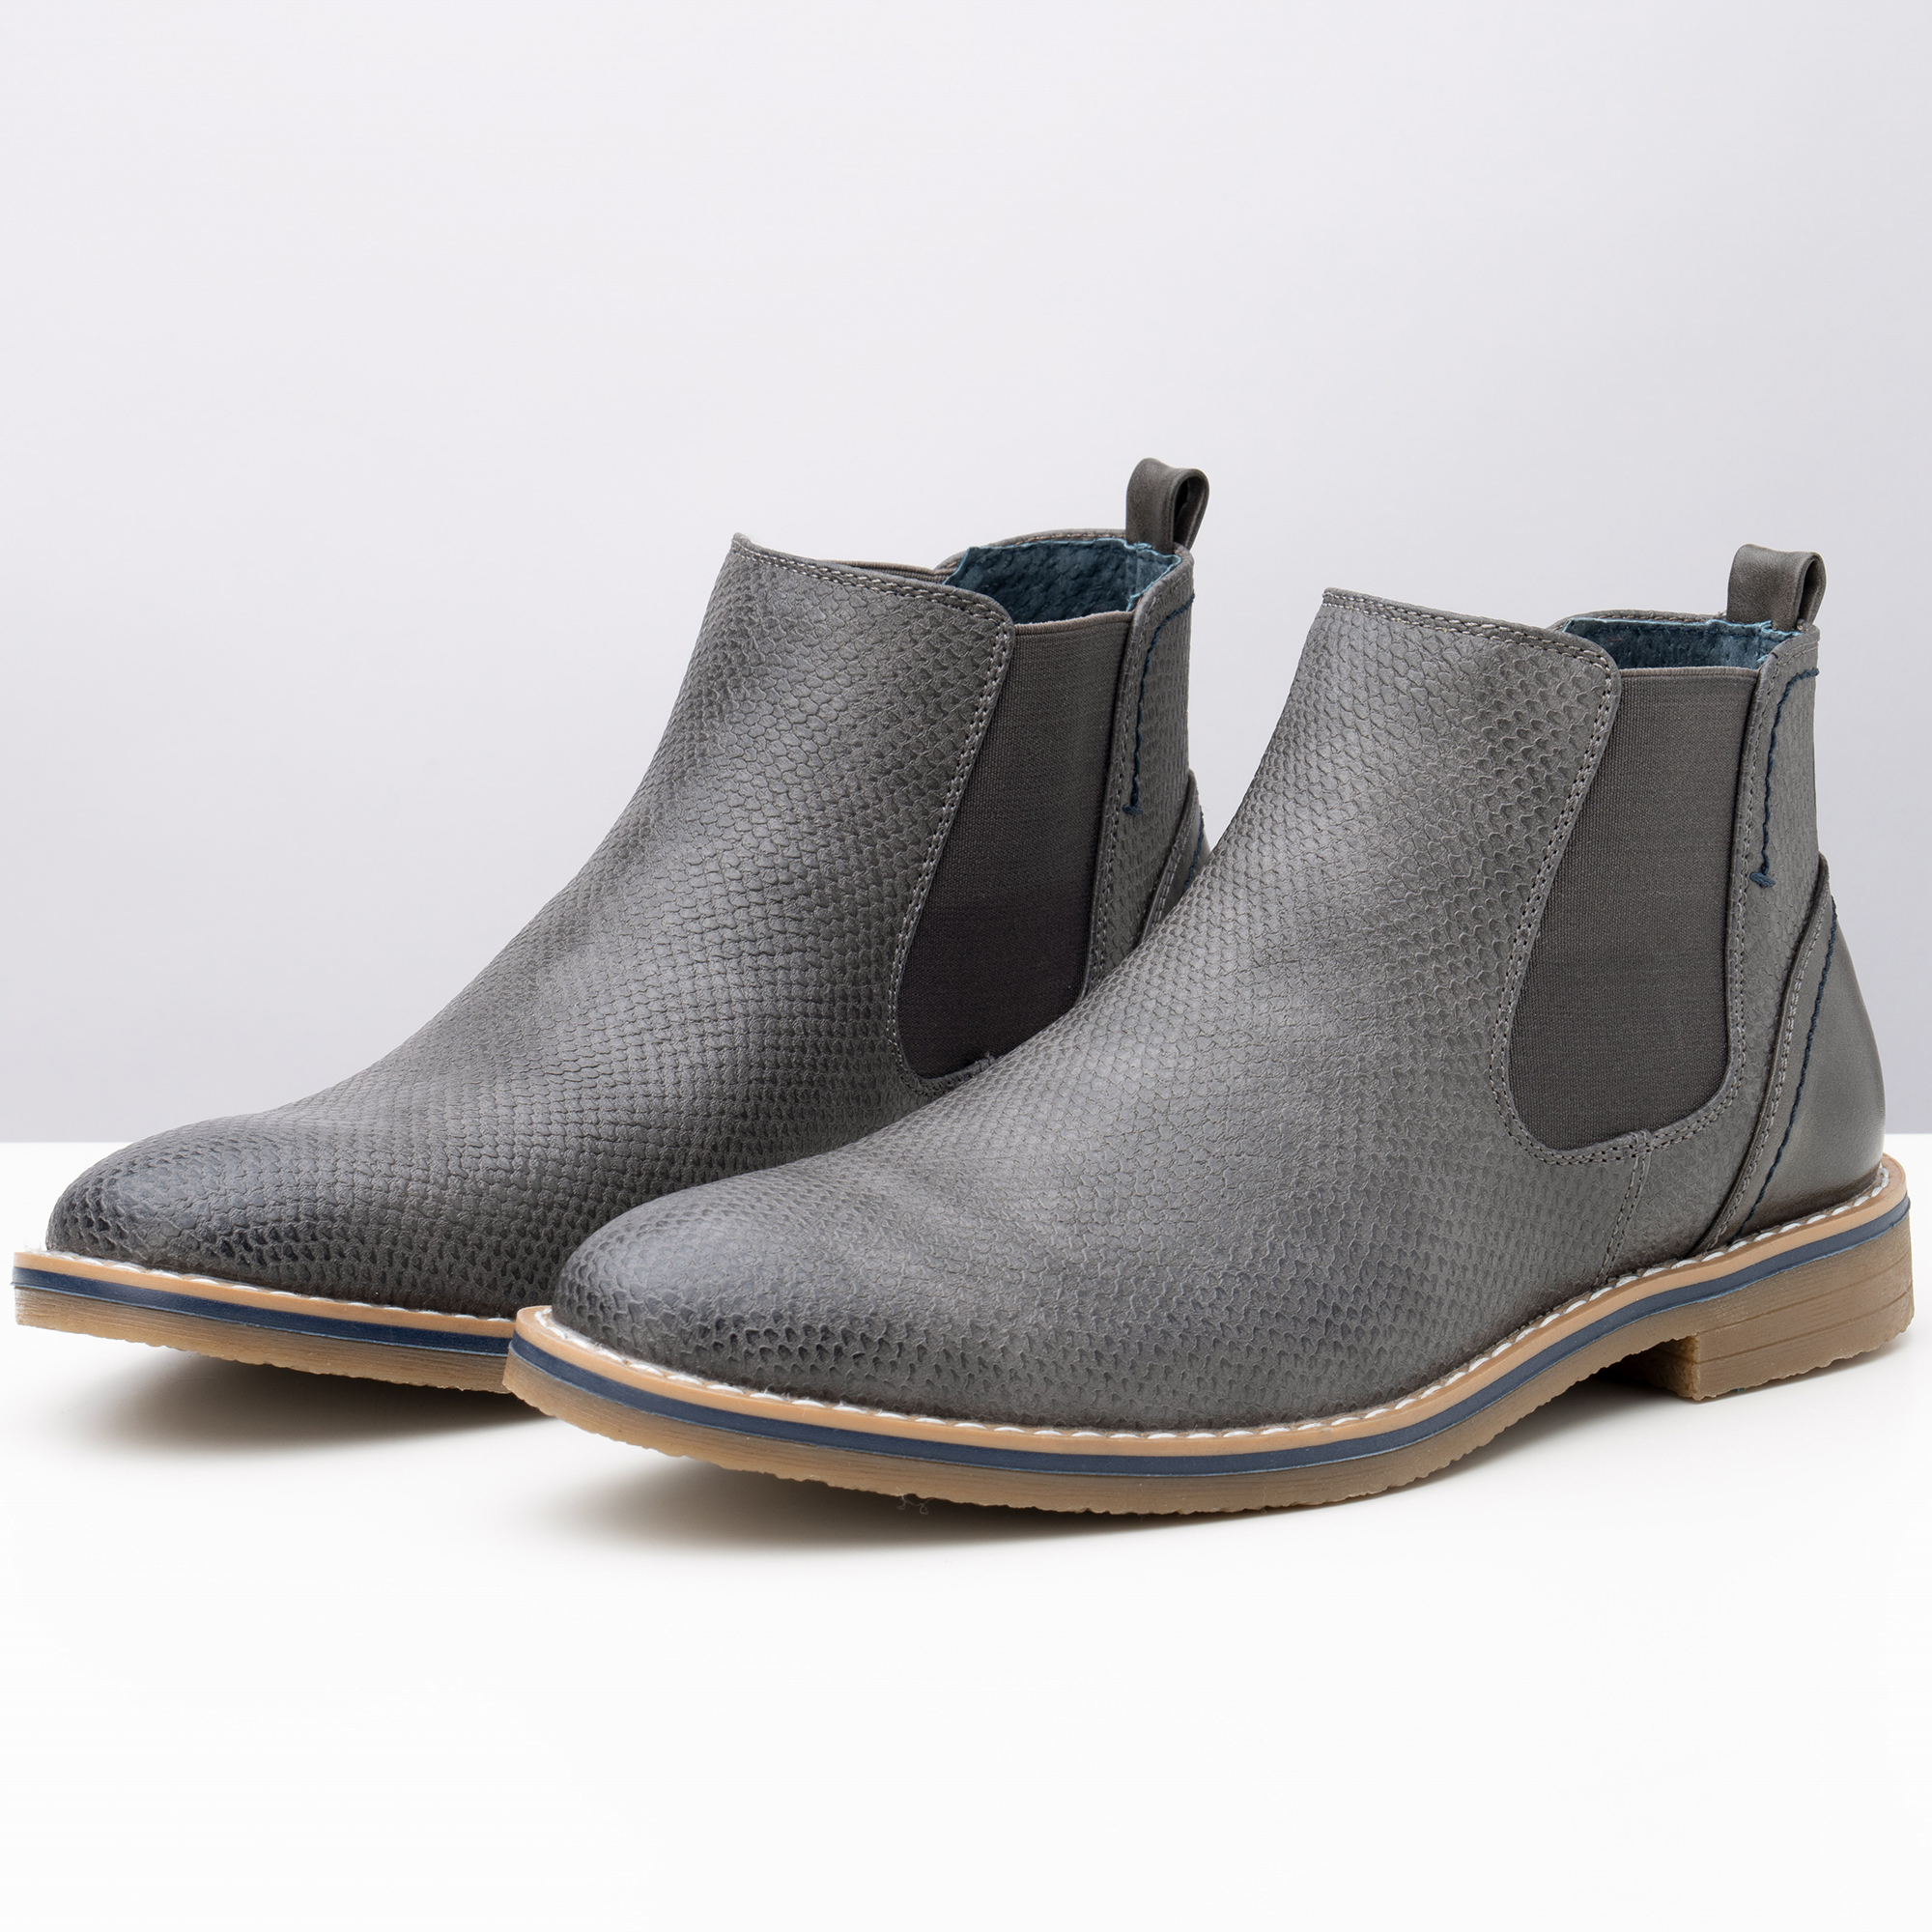 Alpine-Swiss-Mens-Nash-Chelsea-Boots-Snakeskin-Ankle-Boot-Genuine-Leather-Lined miniature 30